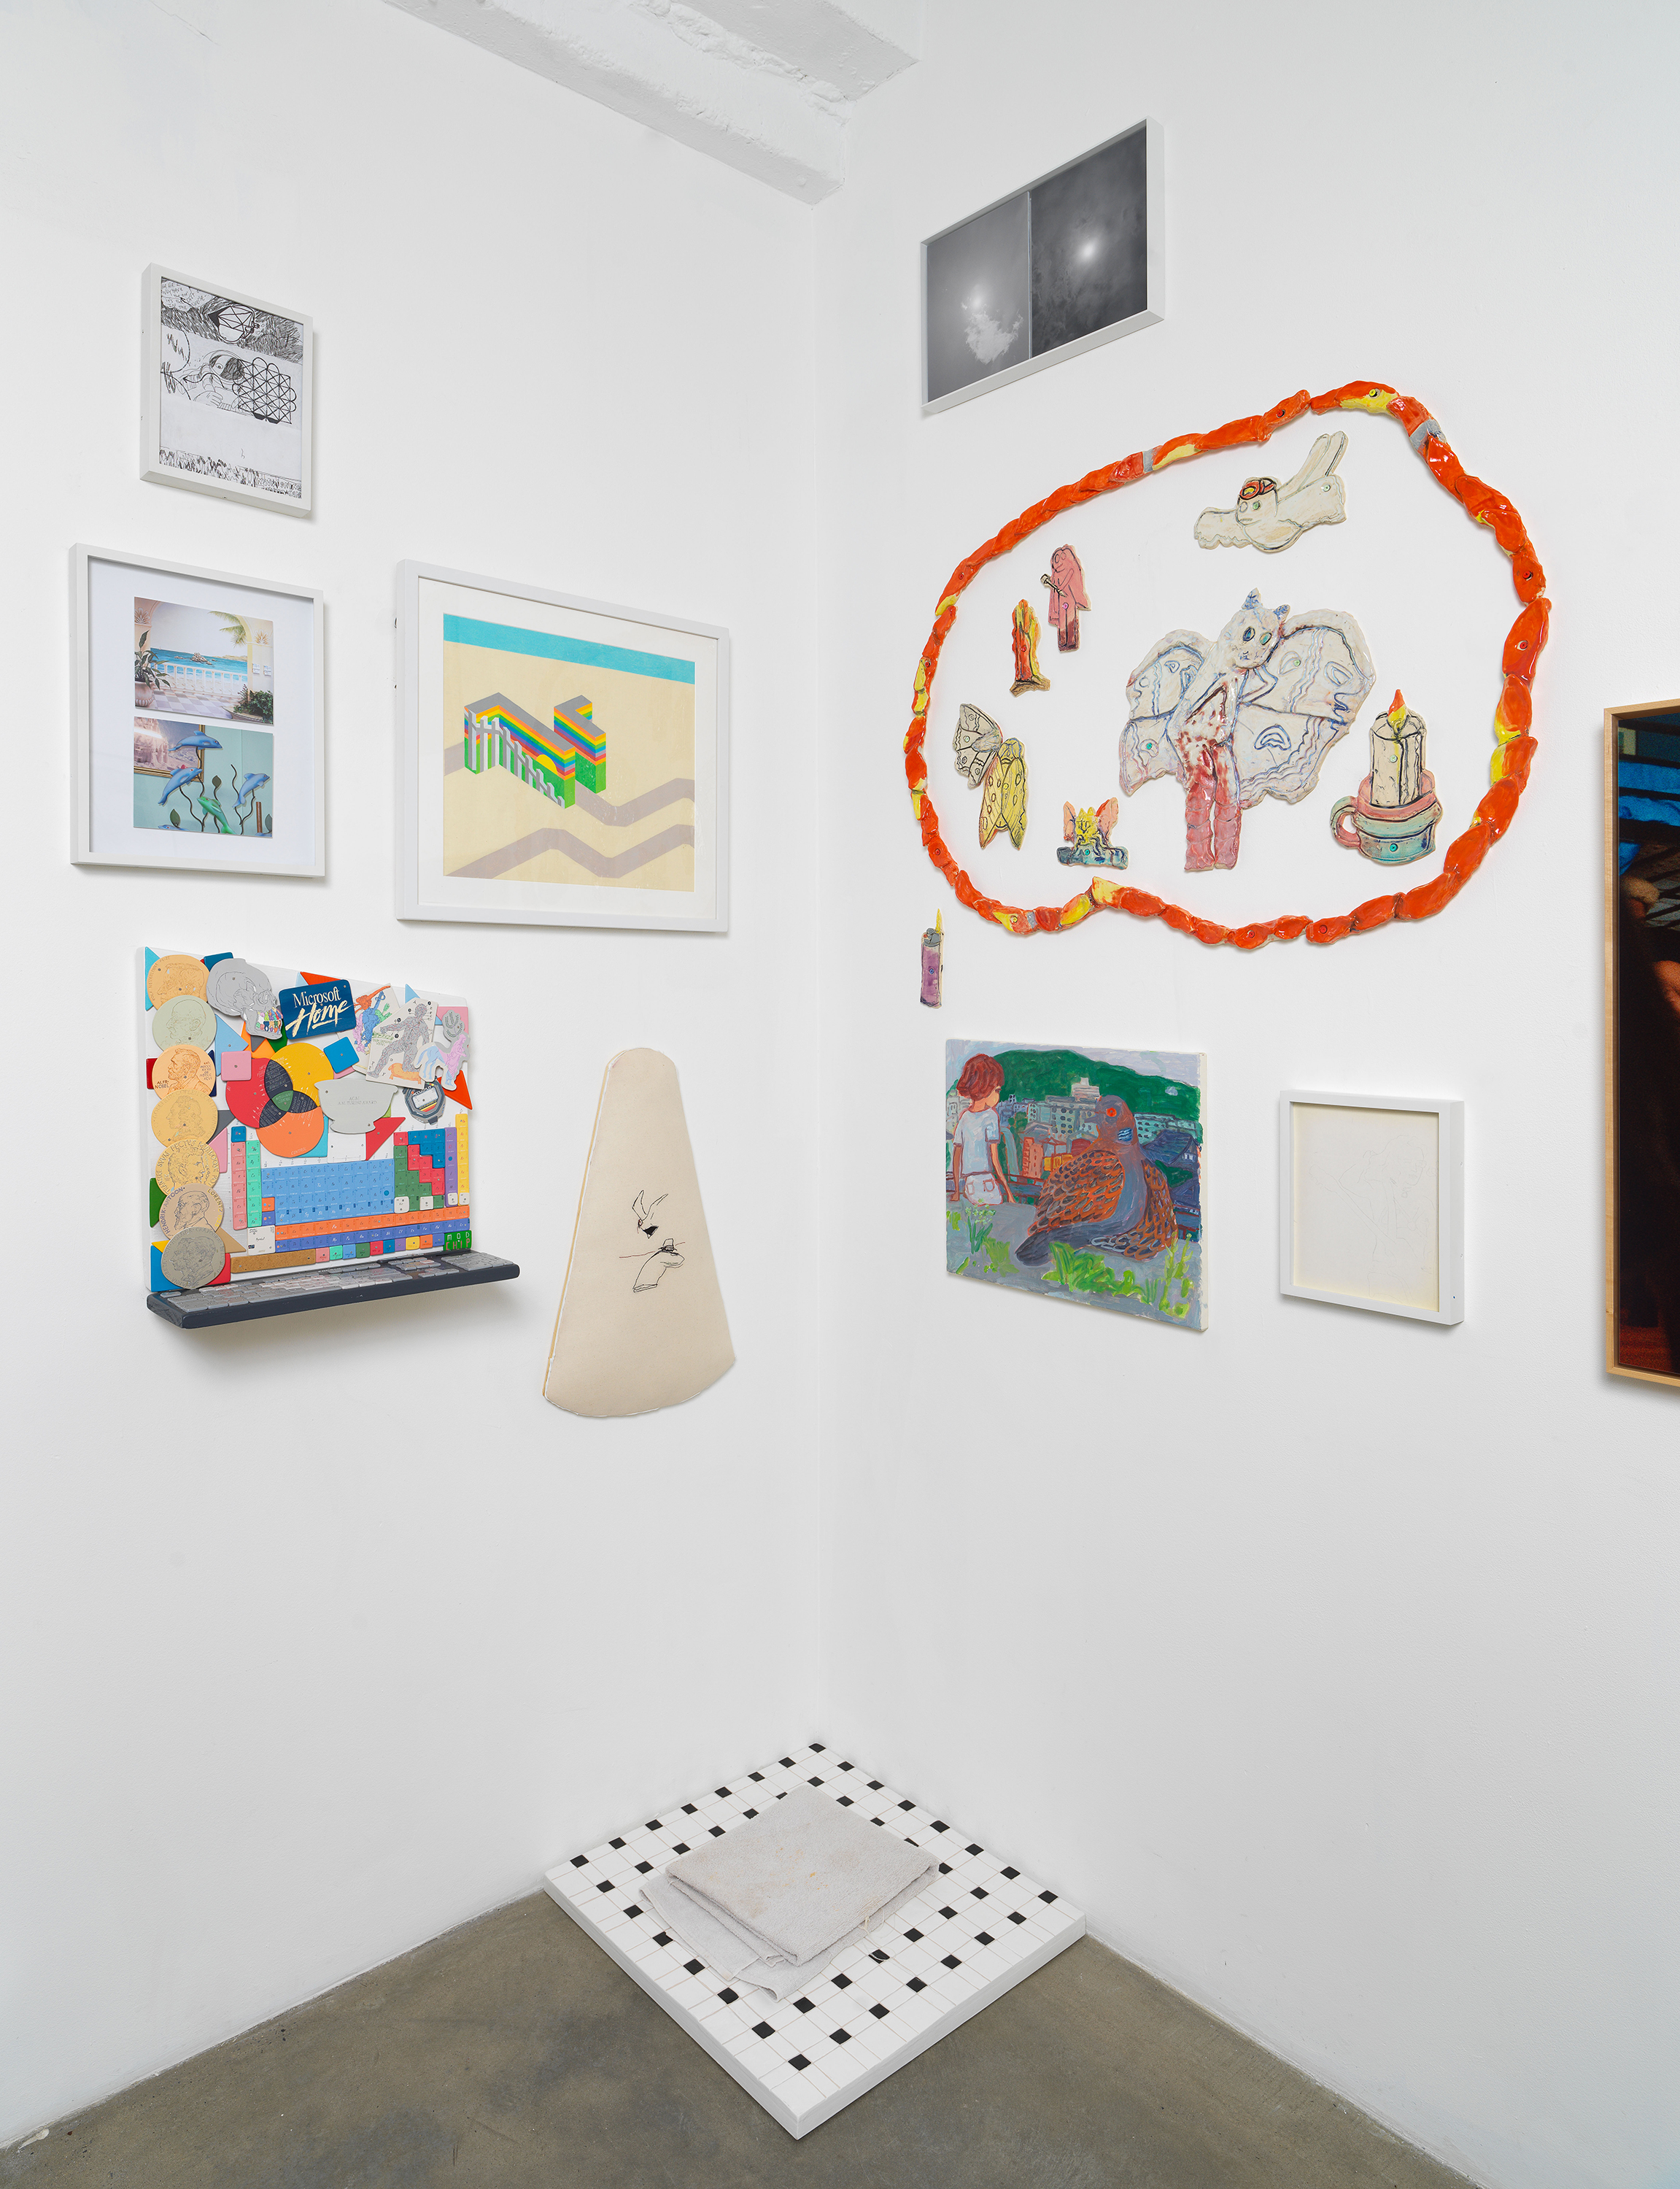 Installation view of 'Can You Dream It' featuring salon-style hanging of multimedia works by various artists and floor sculpture